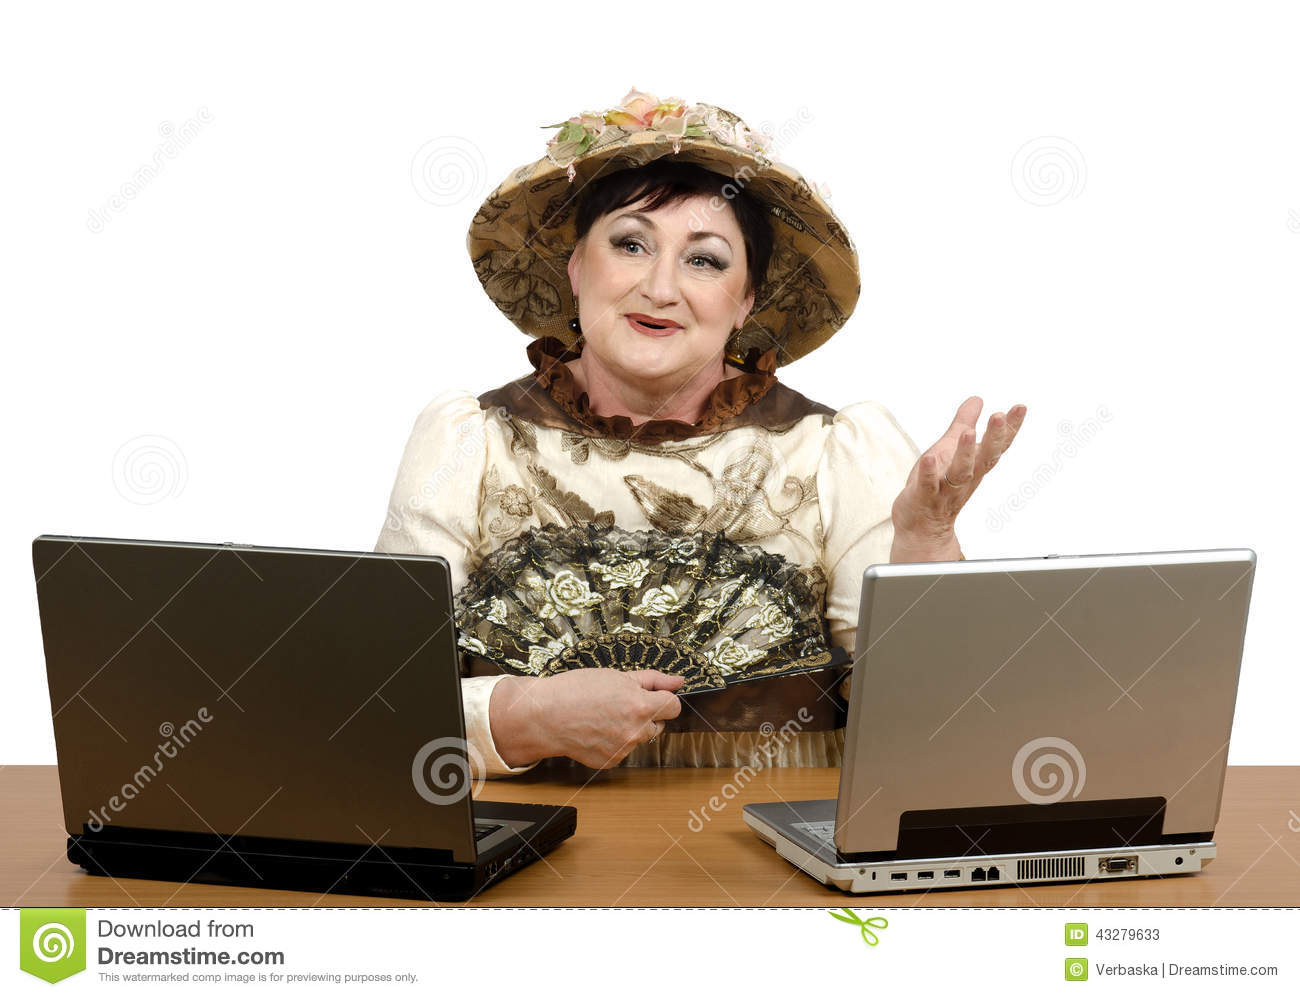 download online support operator wearing halloween costume stock image image of woman computer